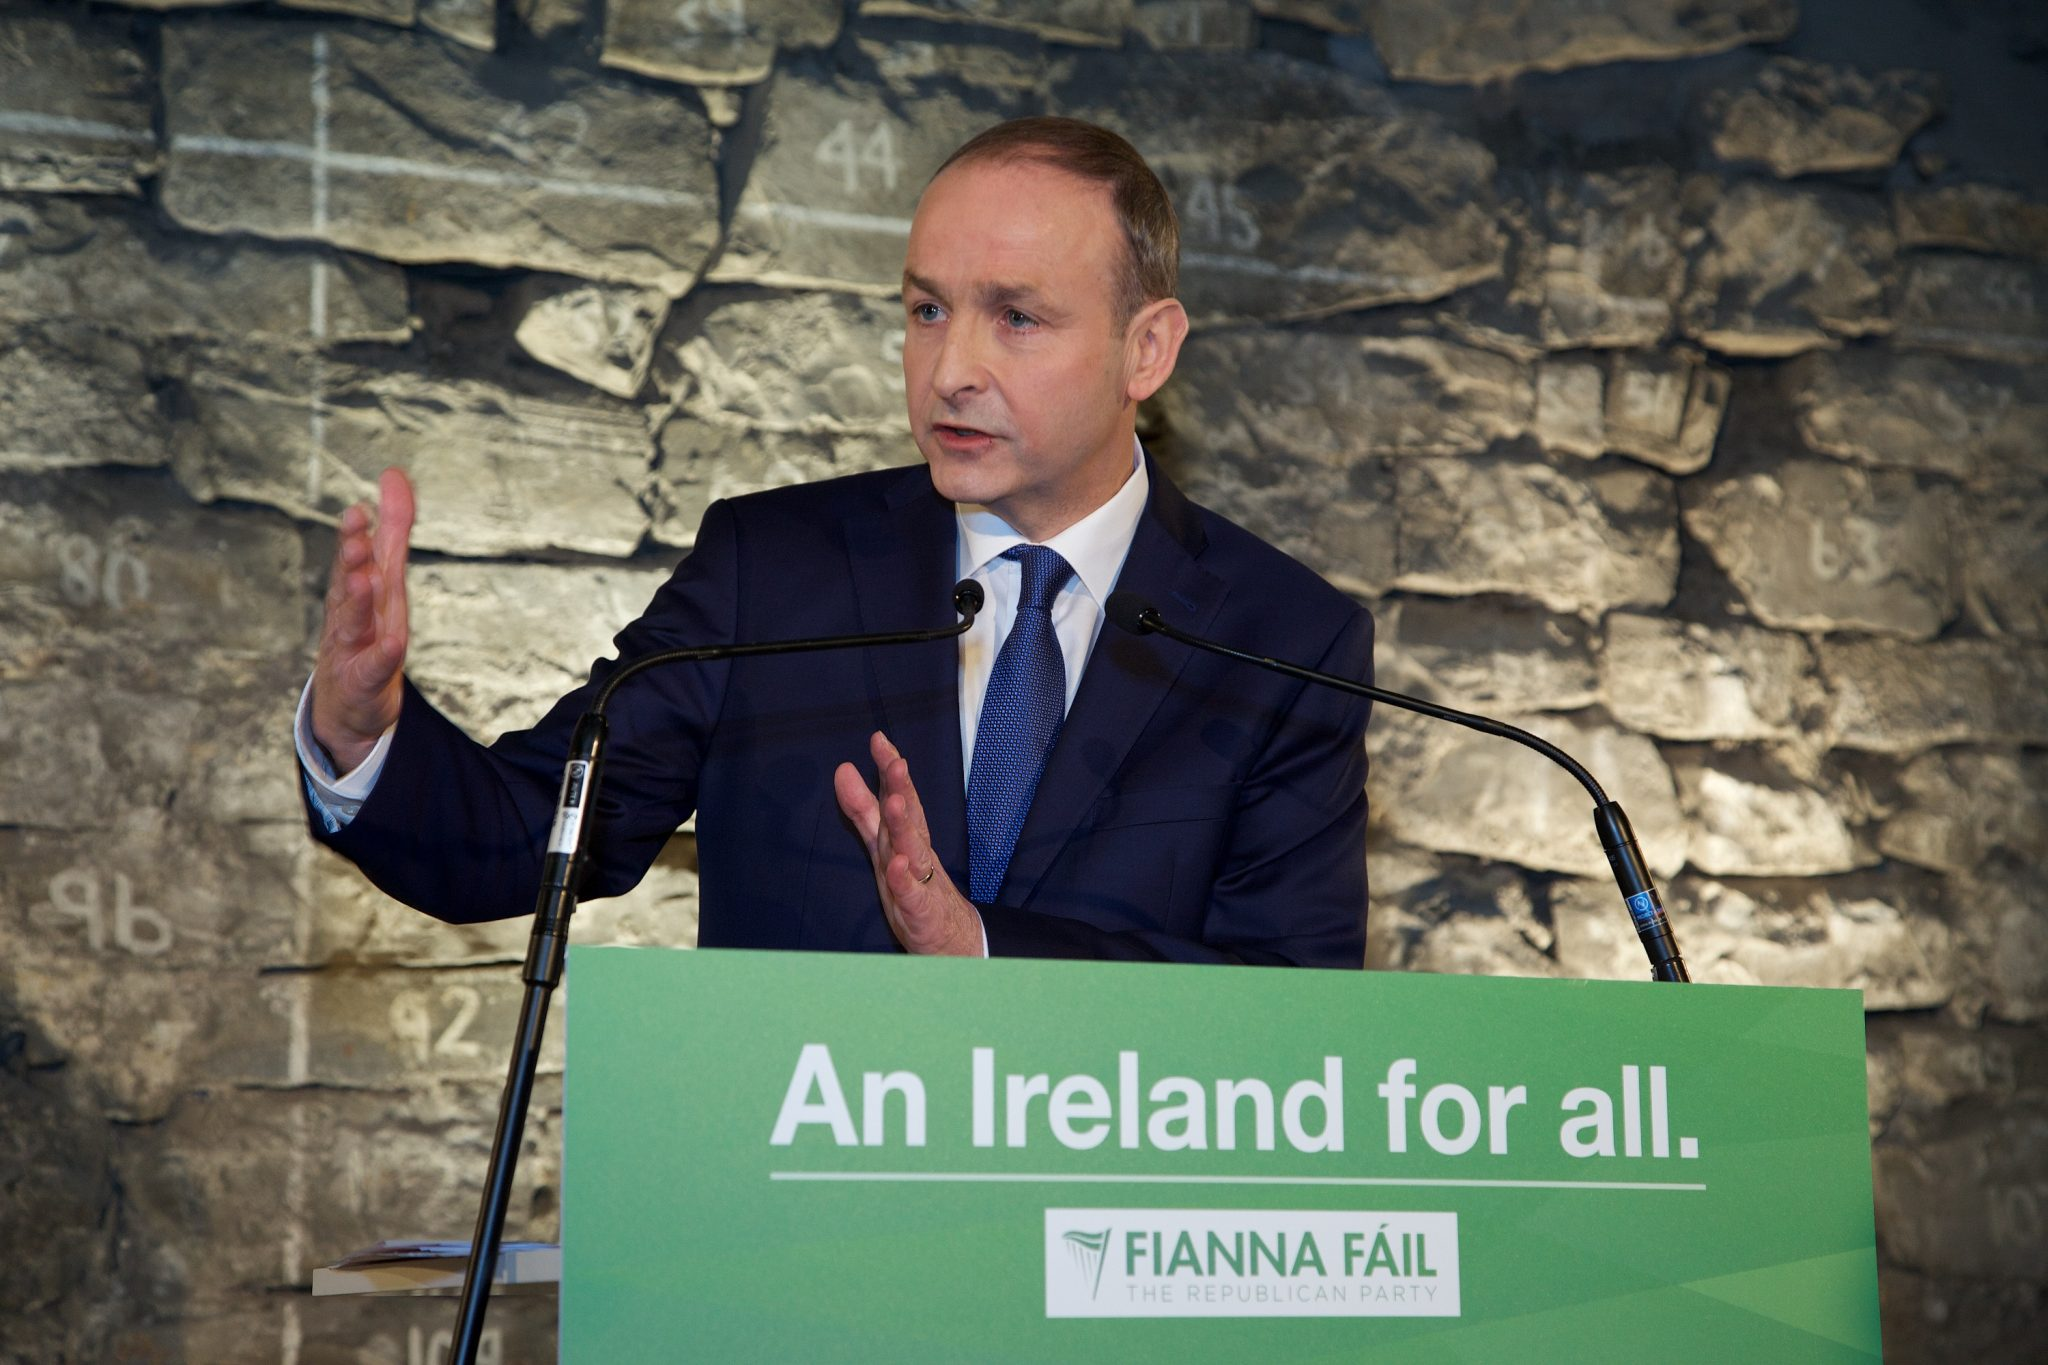 """11 February 2016 Micheal Martin pictured at the launch of the Fianna Fáil General Election Manifesto entitled 'An Ireland for all' today at City Wall Space, Wood Quay Venue, Dublin. Mr Martin said that Fianna Fáil is determined to offer the people an alternative.  """"Fianna Fáil is a party of the centre ground – one which sees economic and social issues as deeply linked.  We believe that an economy can only be strong if it is built on a strong sense of social solidarity and if long-term investment is a priority."""" PIC: LENSMEN"""